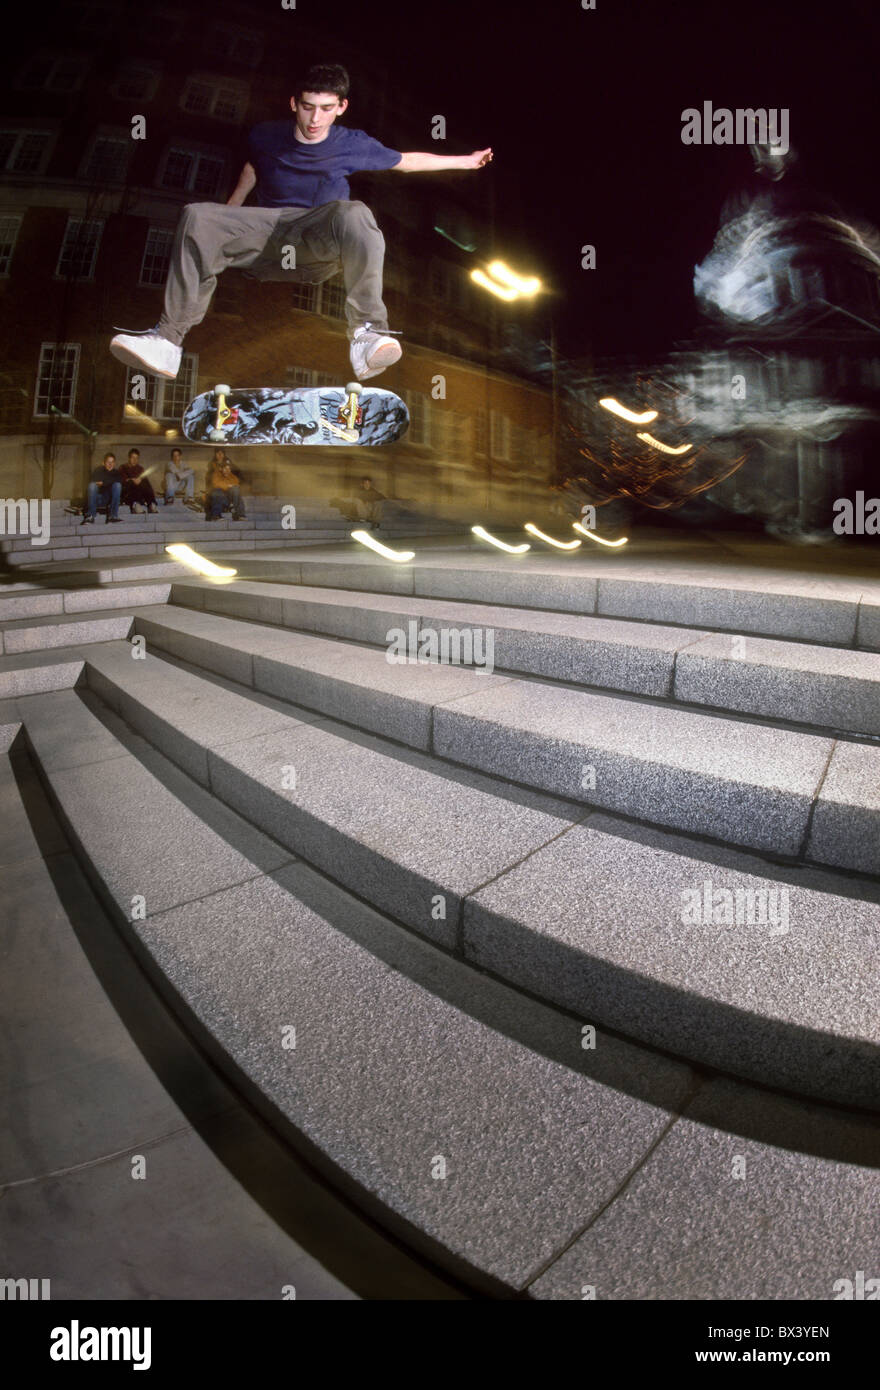 Skateboarder Toby Shuall does a frontside nollie flip in front of St Paul's Cathedral, London, United Kingdom - Stock Image